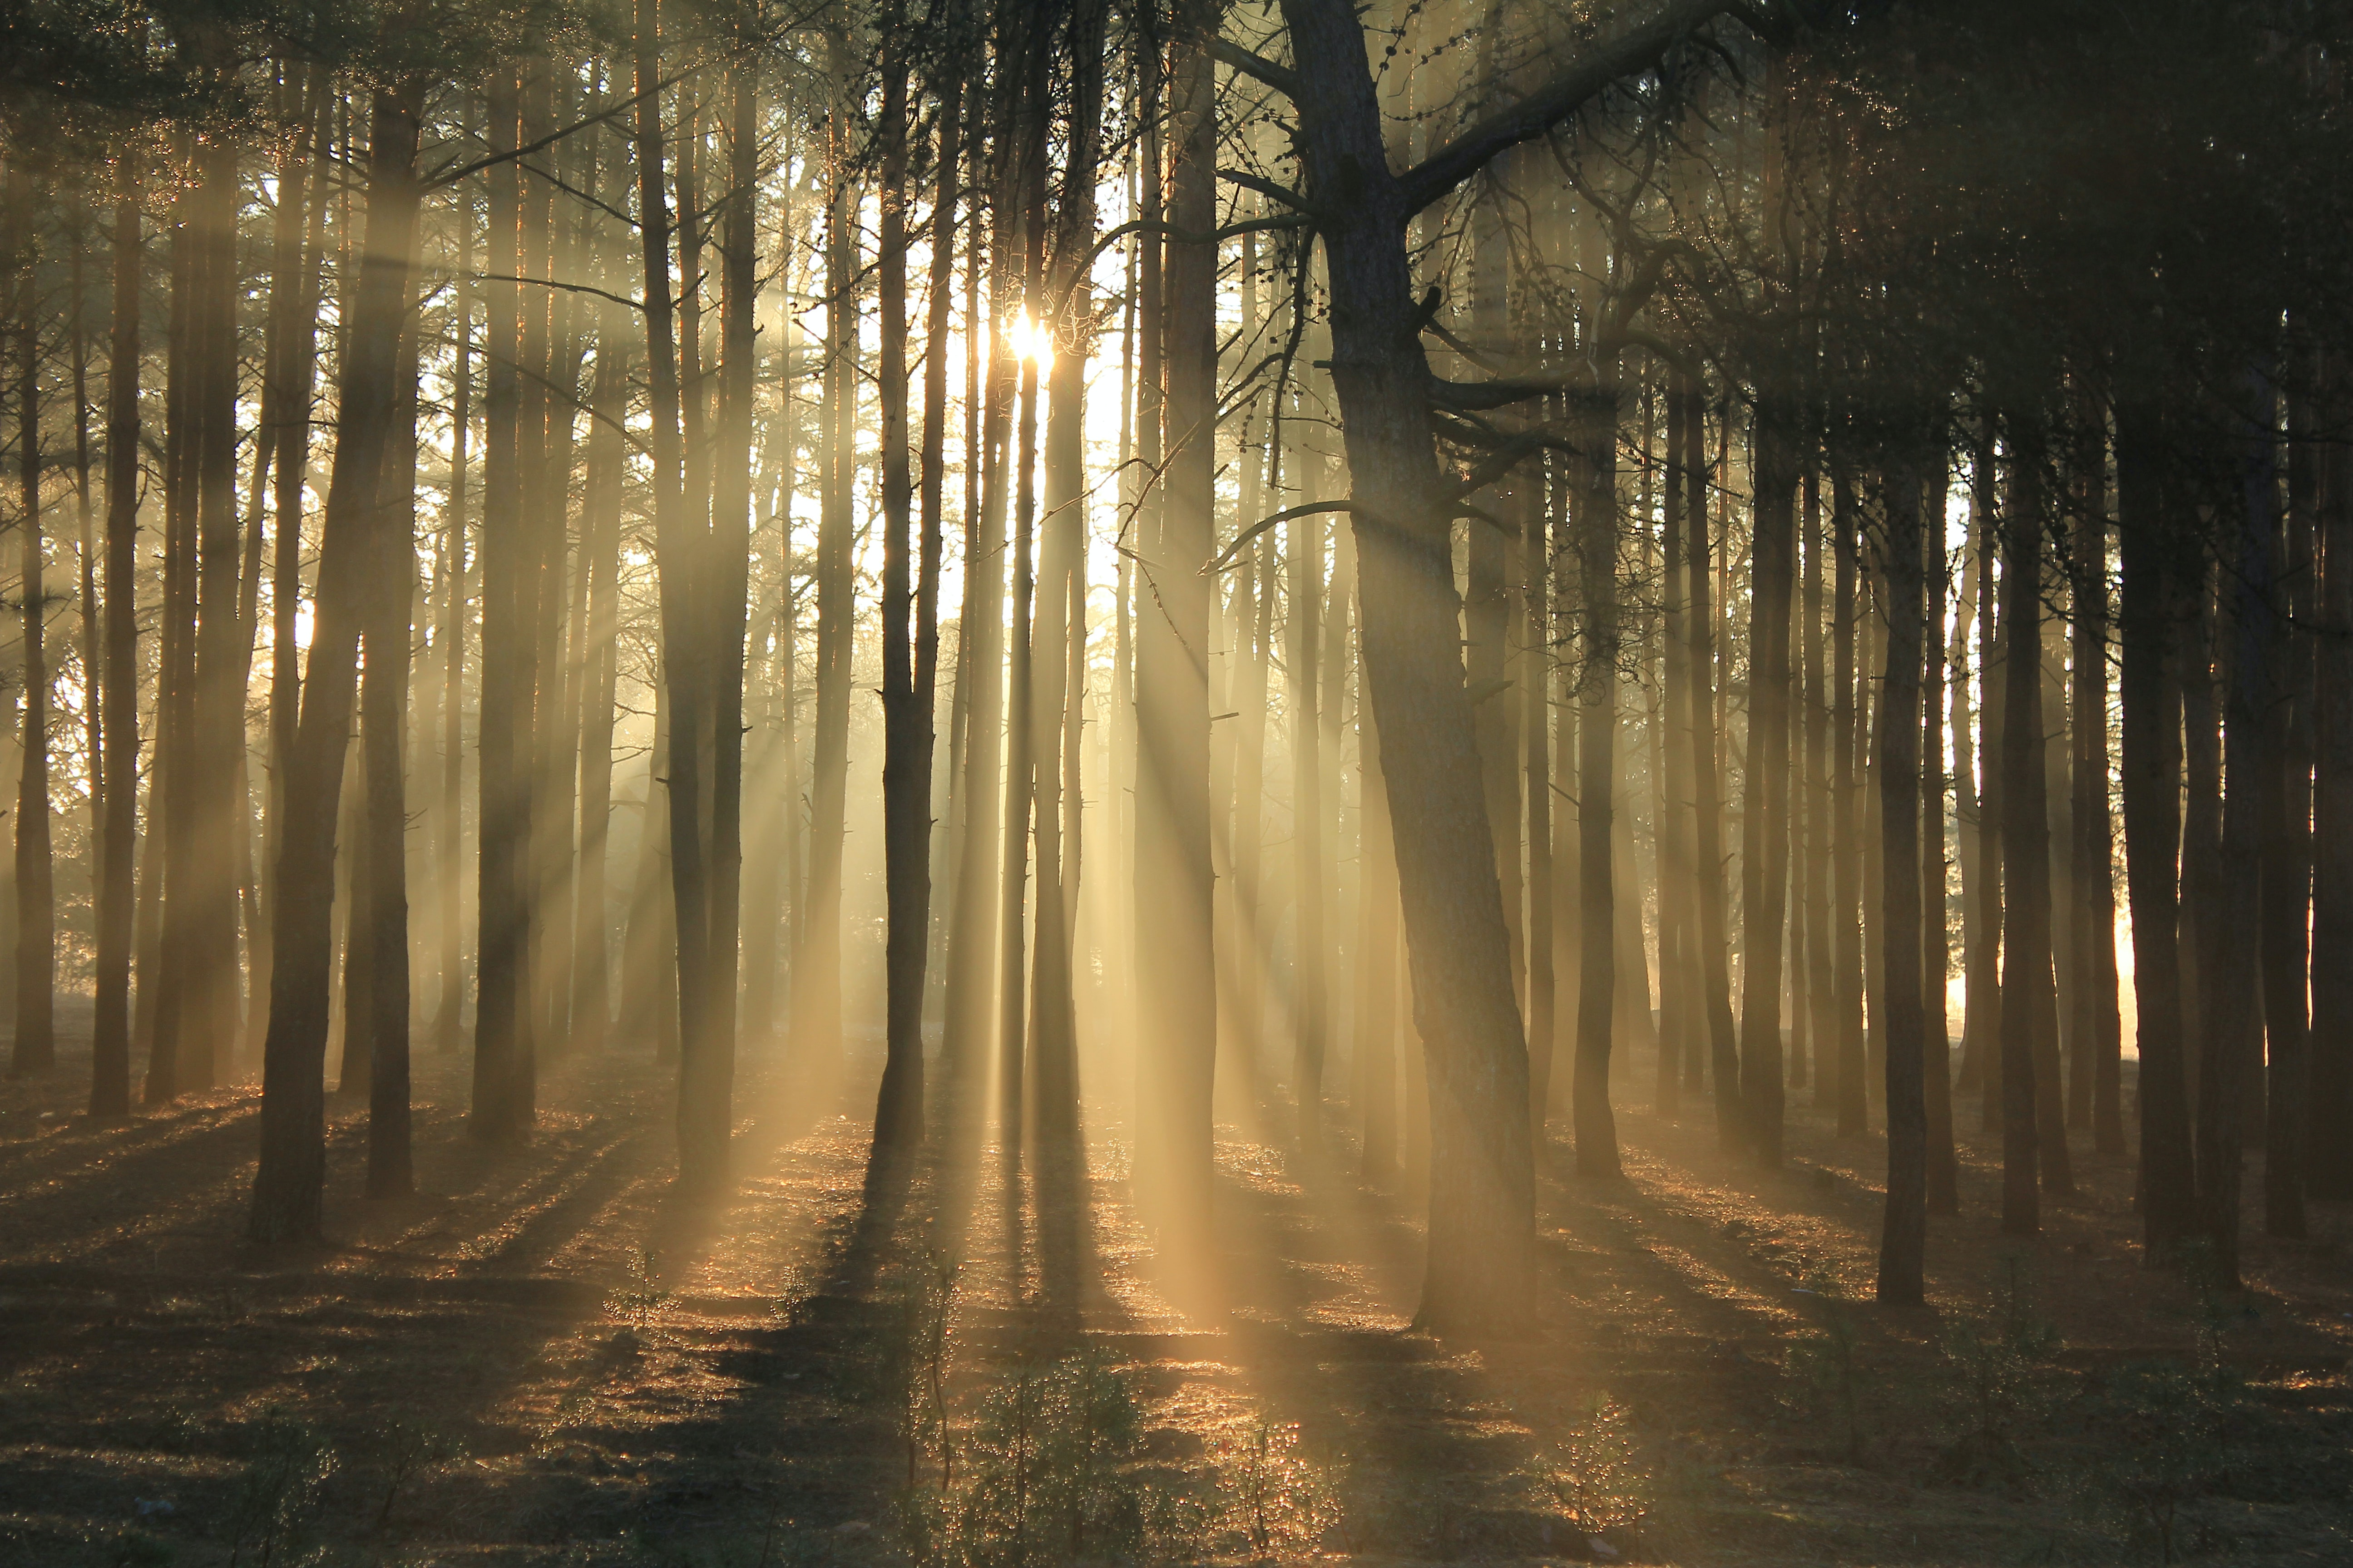 silhouette photography of tall trees